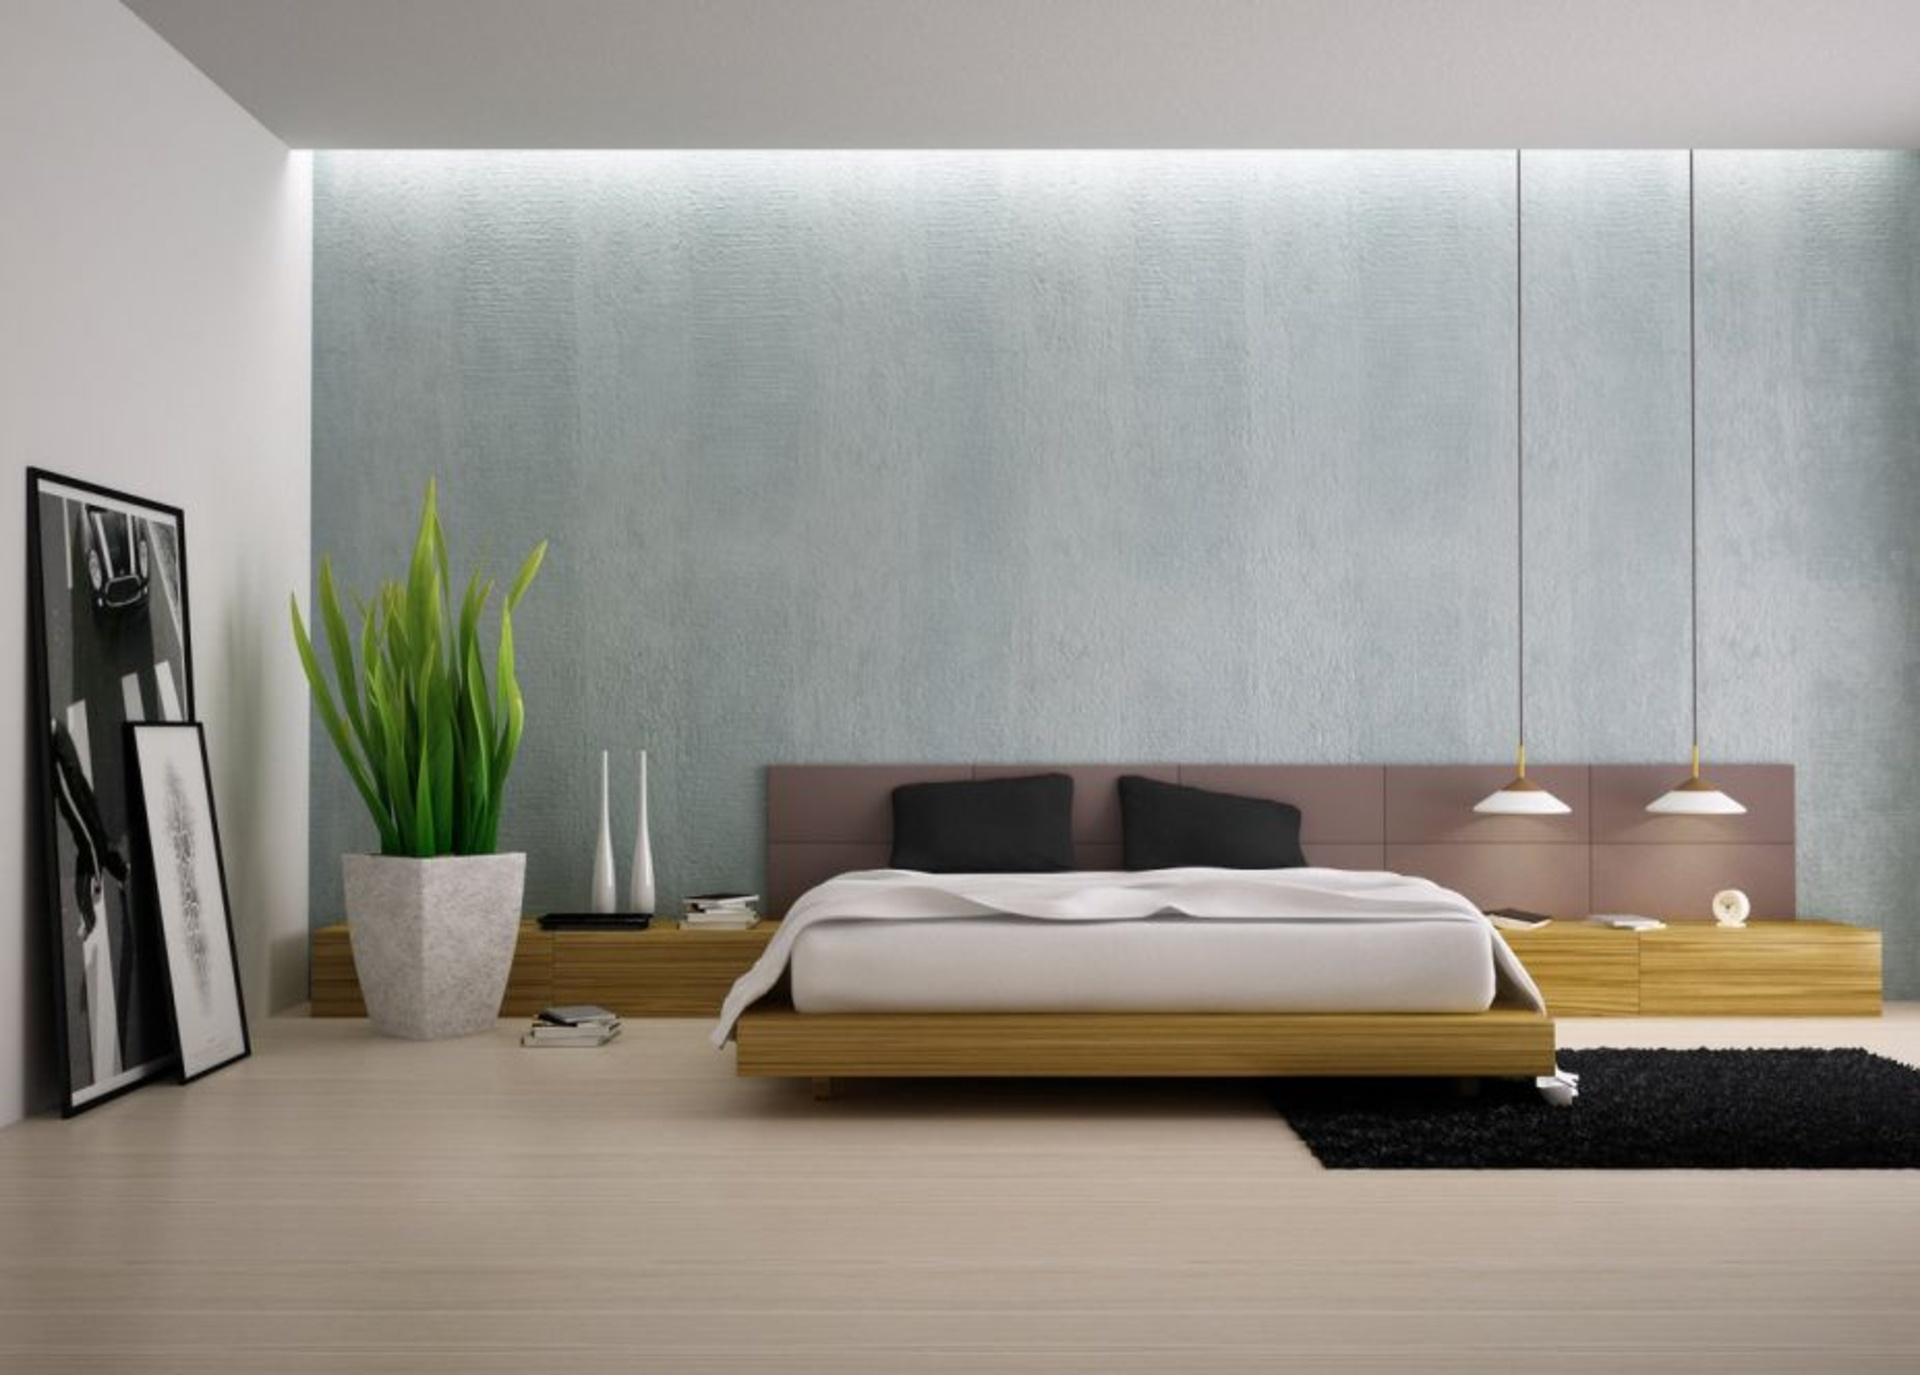 bedroom-bedroom-interior-sweet-and-nice-brown-wooden-low-profile-master-bedding-with-gray-headboard-as-well-as-cool-false-ceiling-lamps-in-modern-minimalist-bedroom-ideas-27-mini